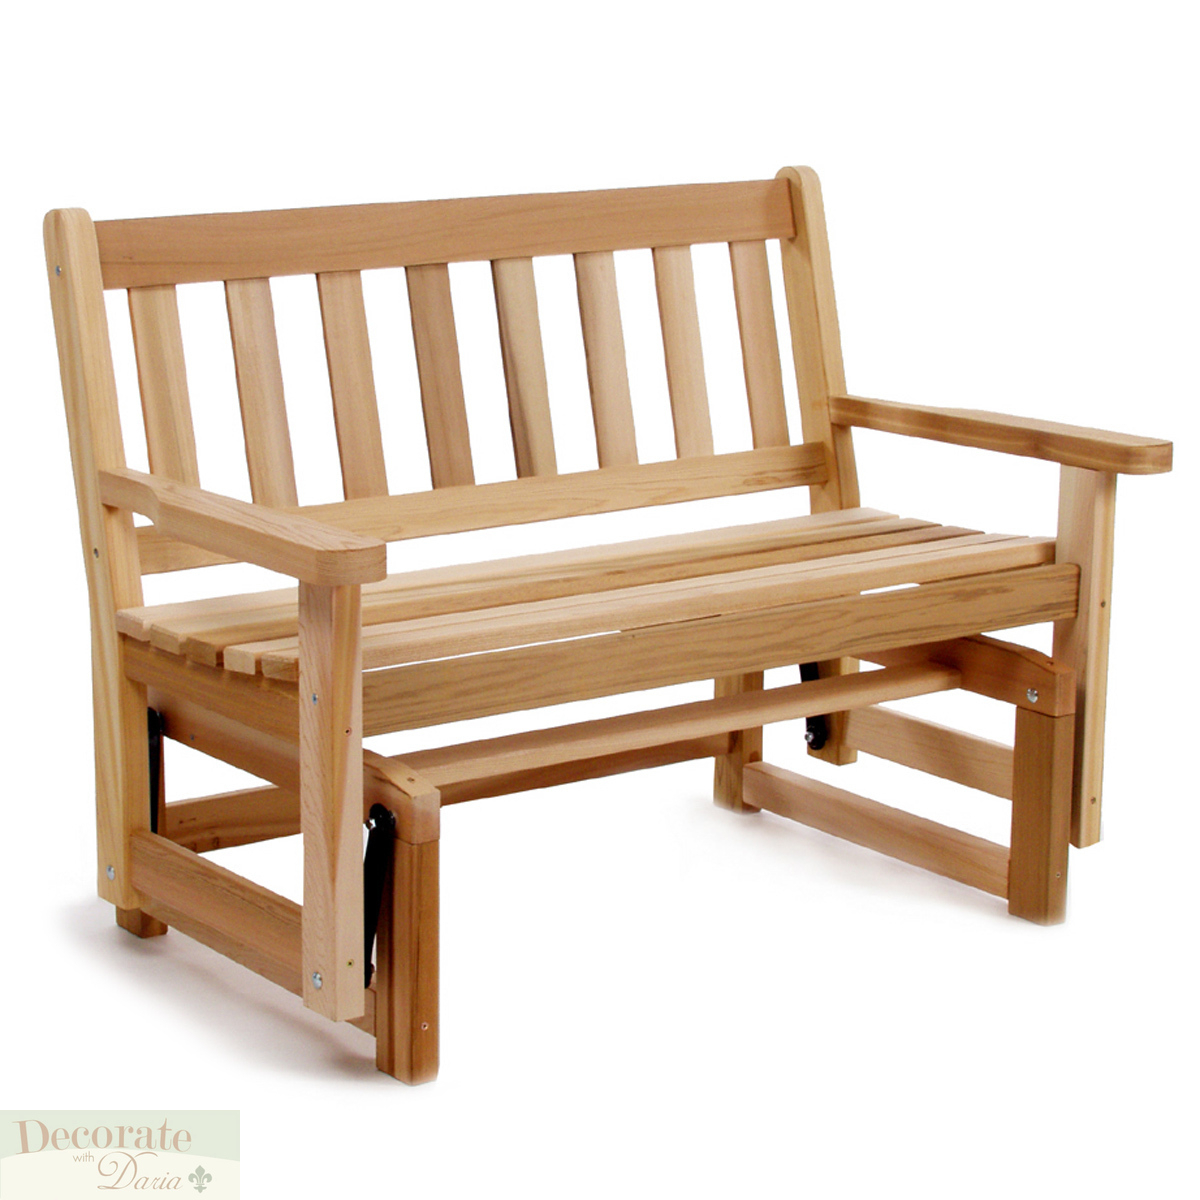 """Details About Glider Bench Motion 48"""" Red Cedar Handcrafted Curved Seat  Shaker Style Back New With Regard To 2 Person Natural Cedar Wood Outdoor Gliders (Image 12 of 25)"""